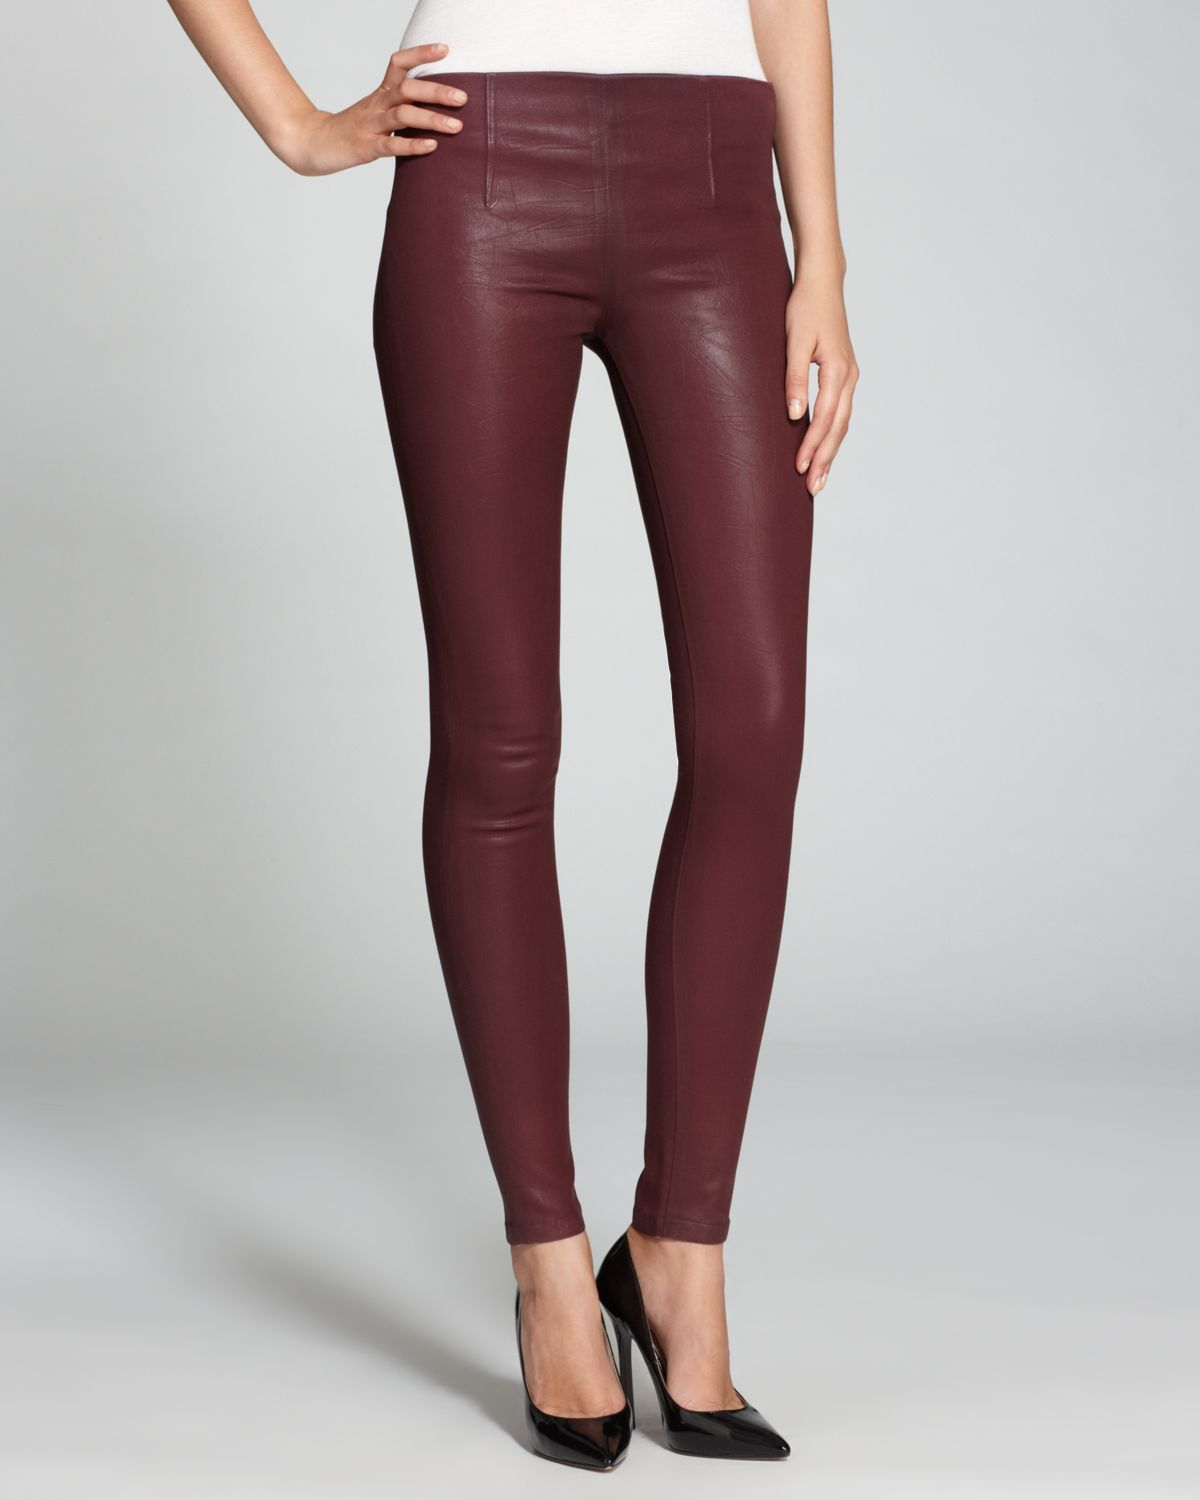 SOLD design lab Jeans - Burgundy Coated Side Zip Skinny | Bloomingdale's